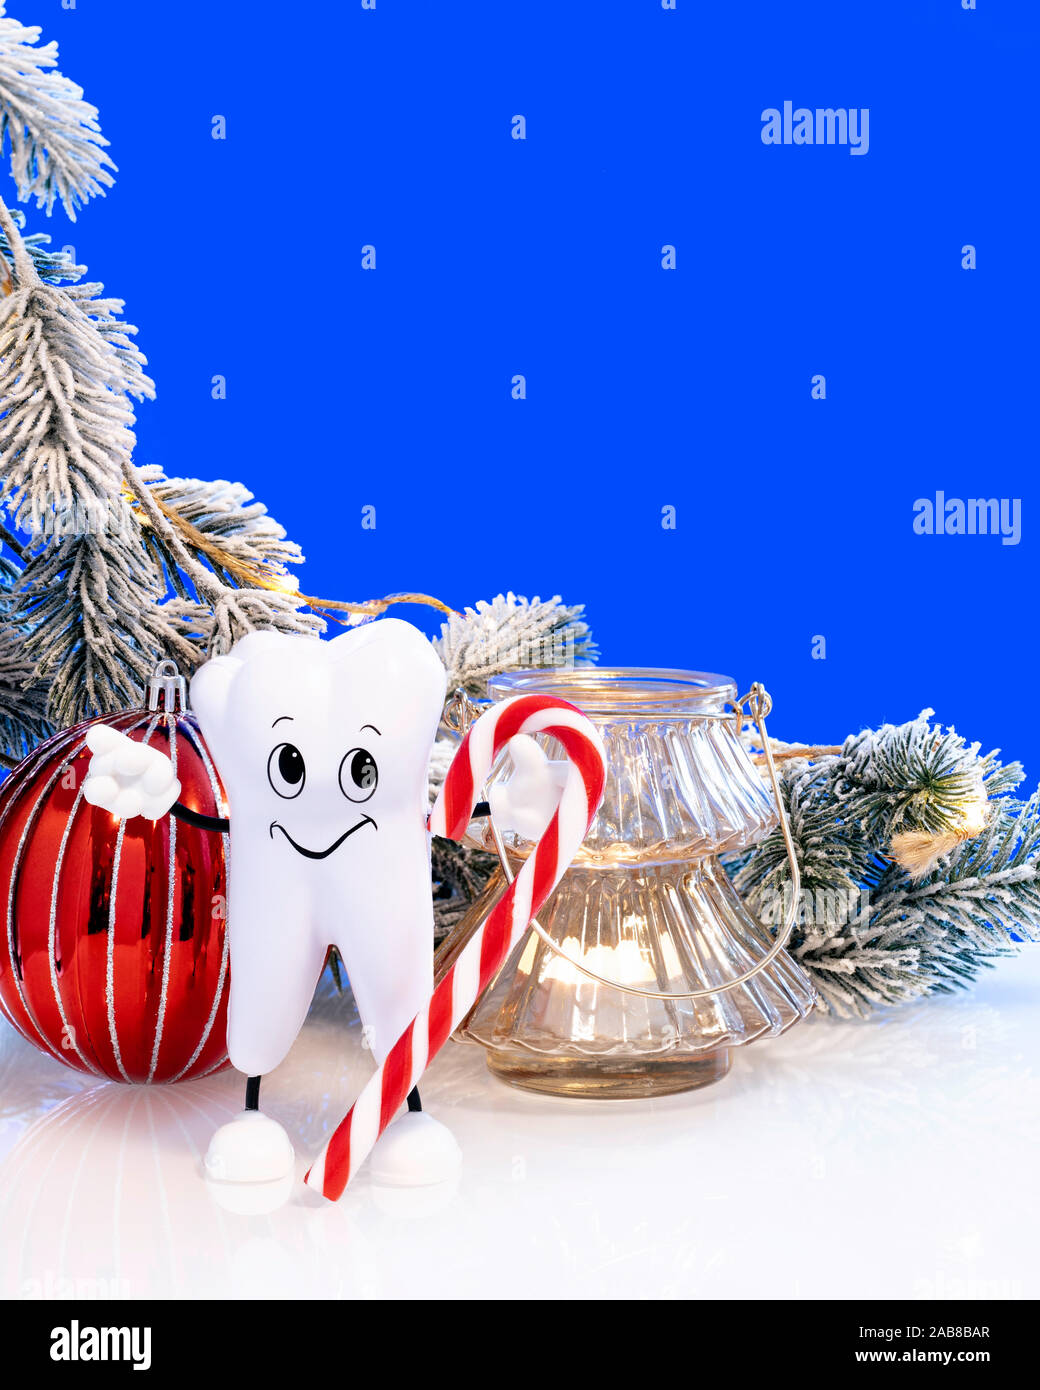 Dental Care Banner High Resolution Stock Photography And Images Alamy